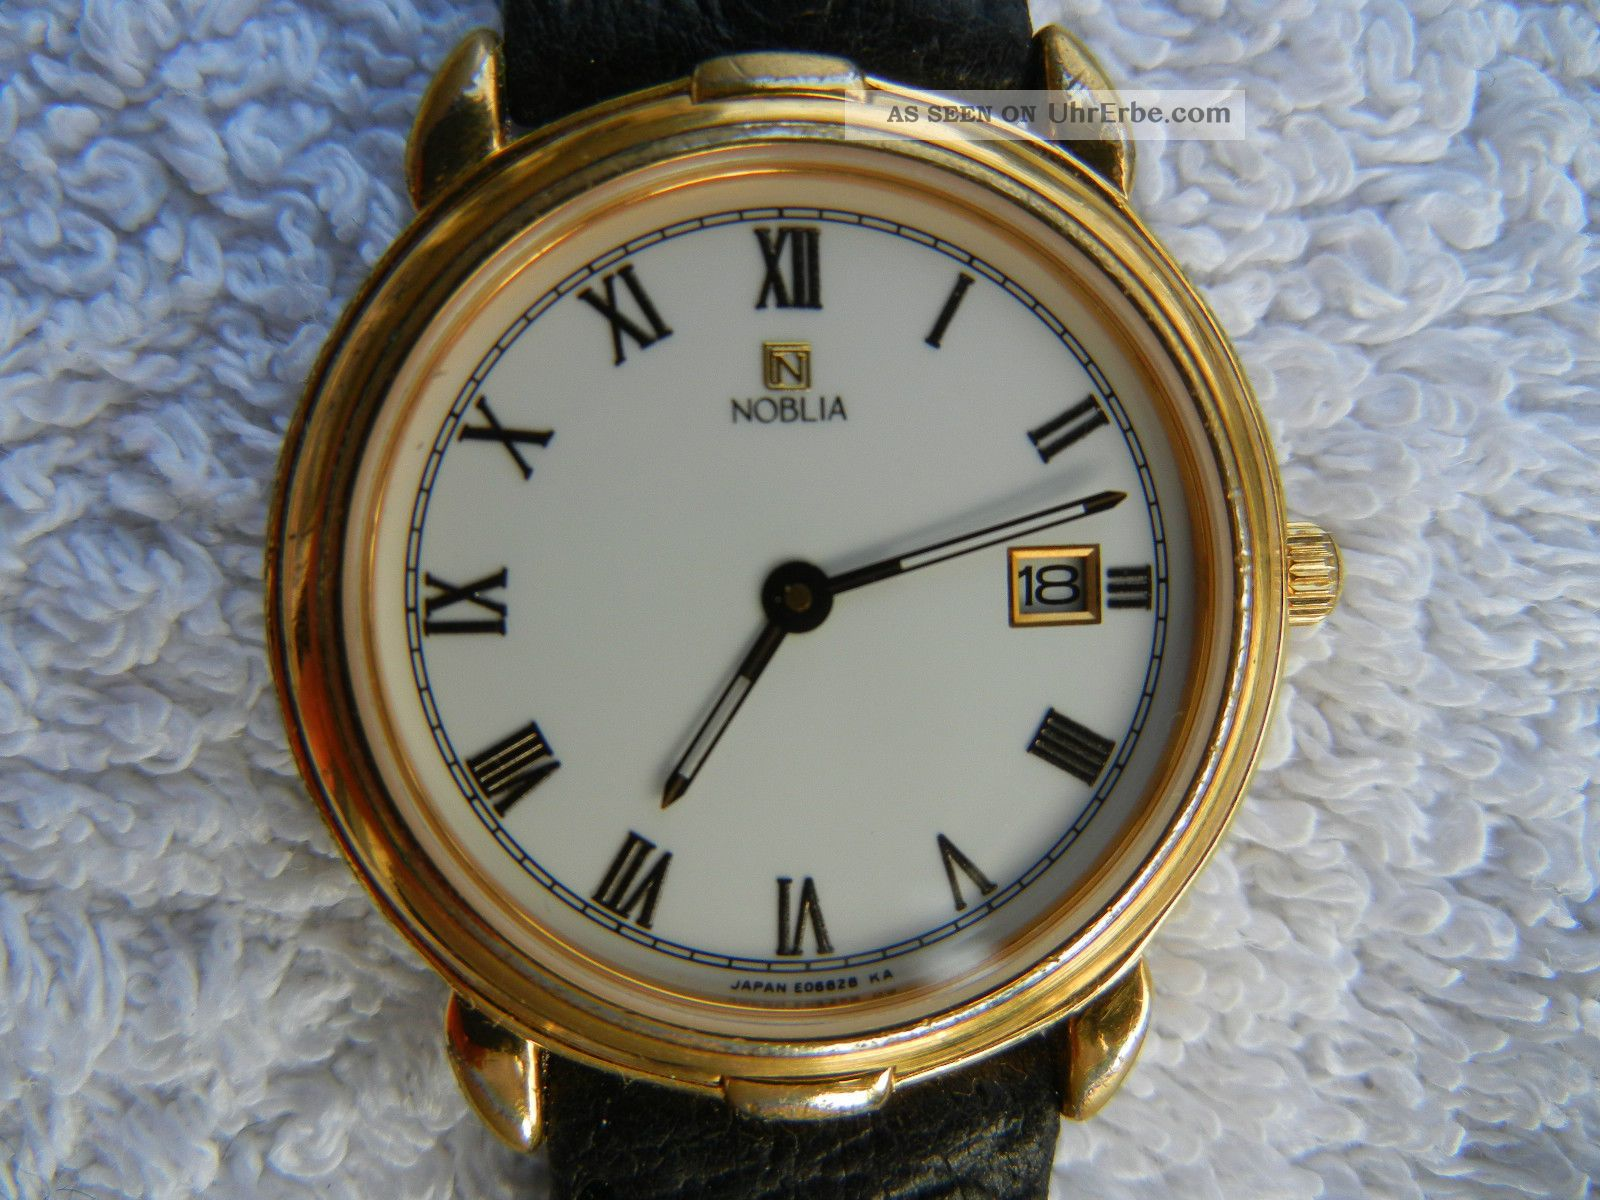 citizen noblia uhren